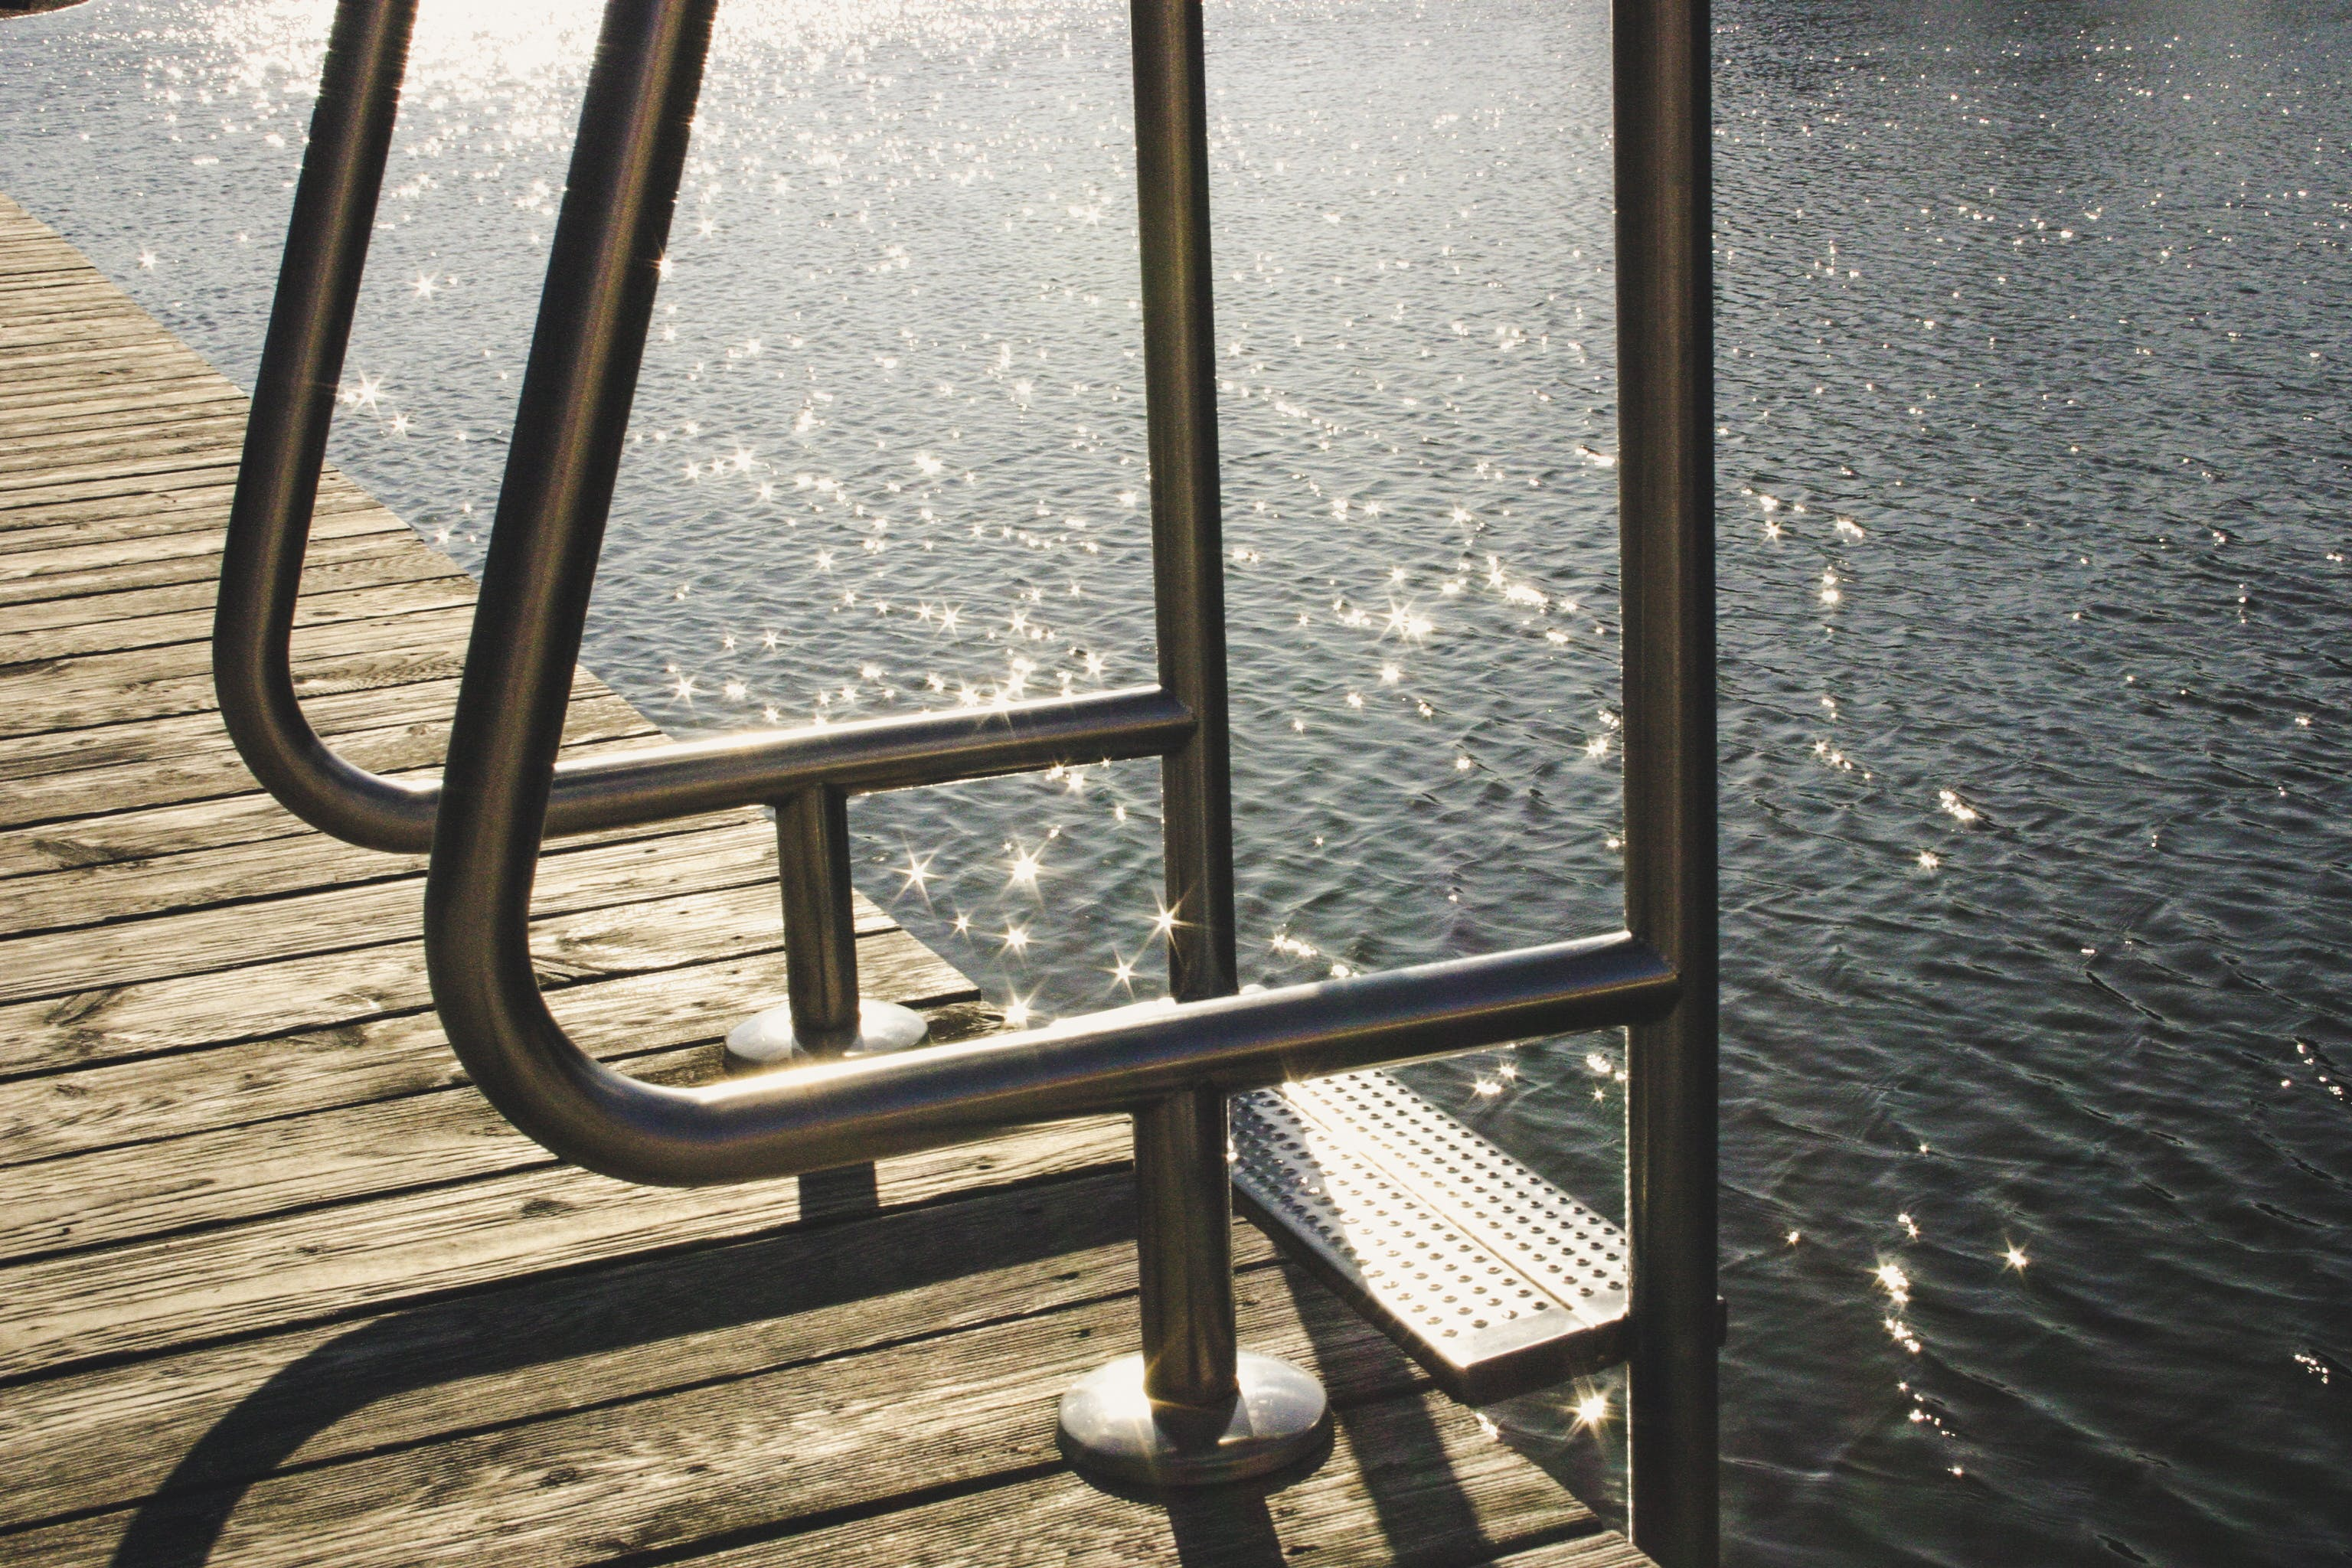 dock, lake, outdoors